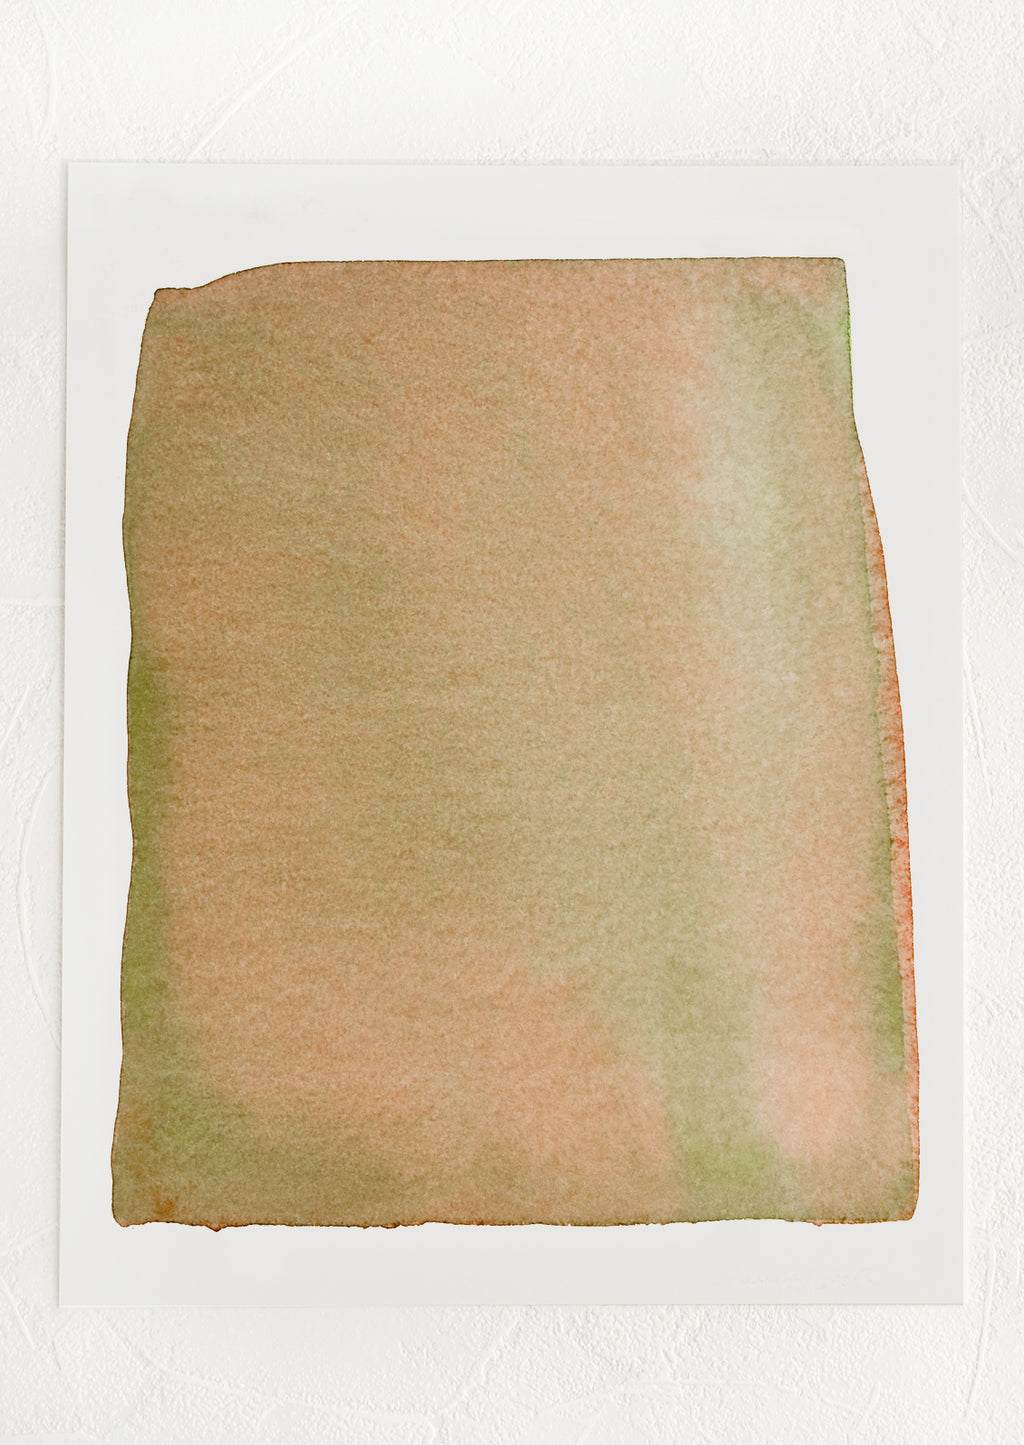 1: An art print with squared watercolor form in layered brown and olive green.